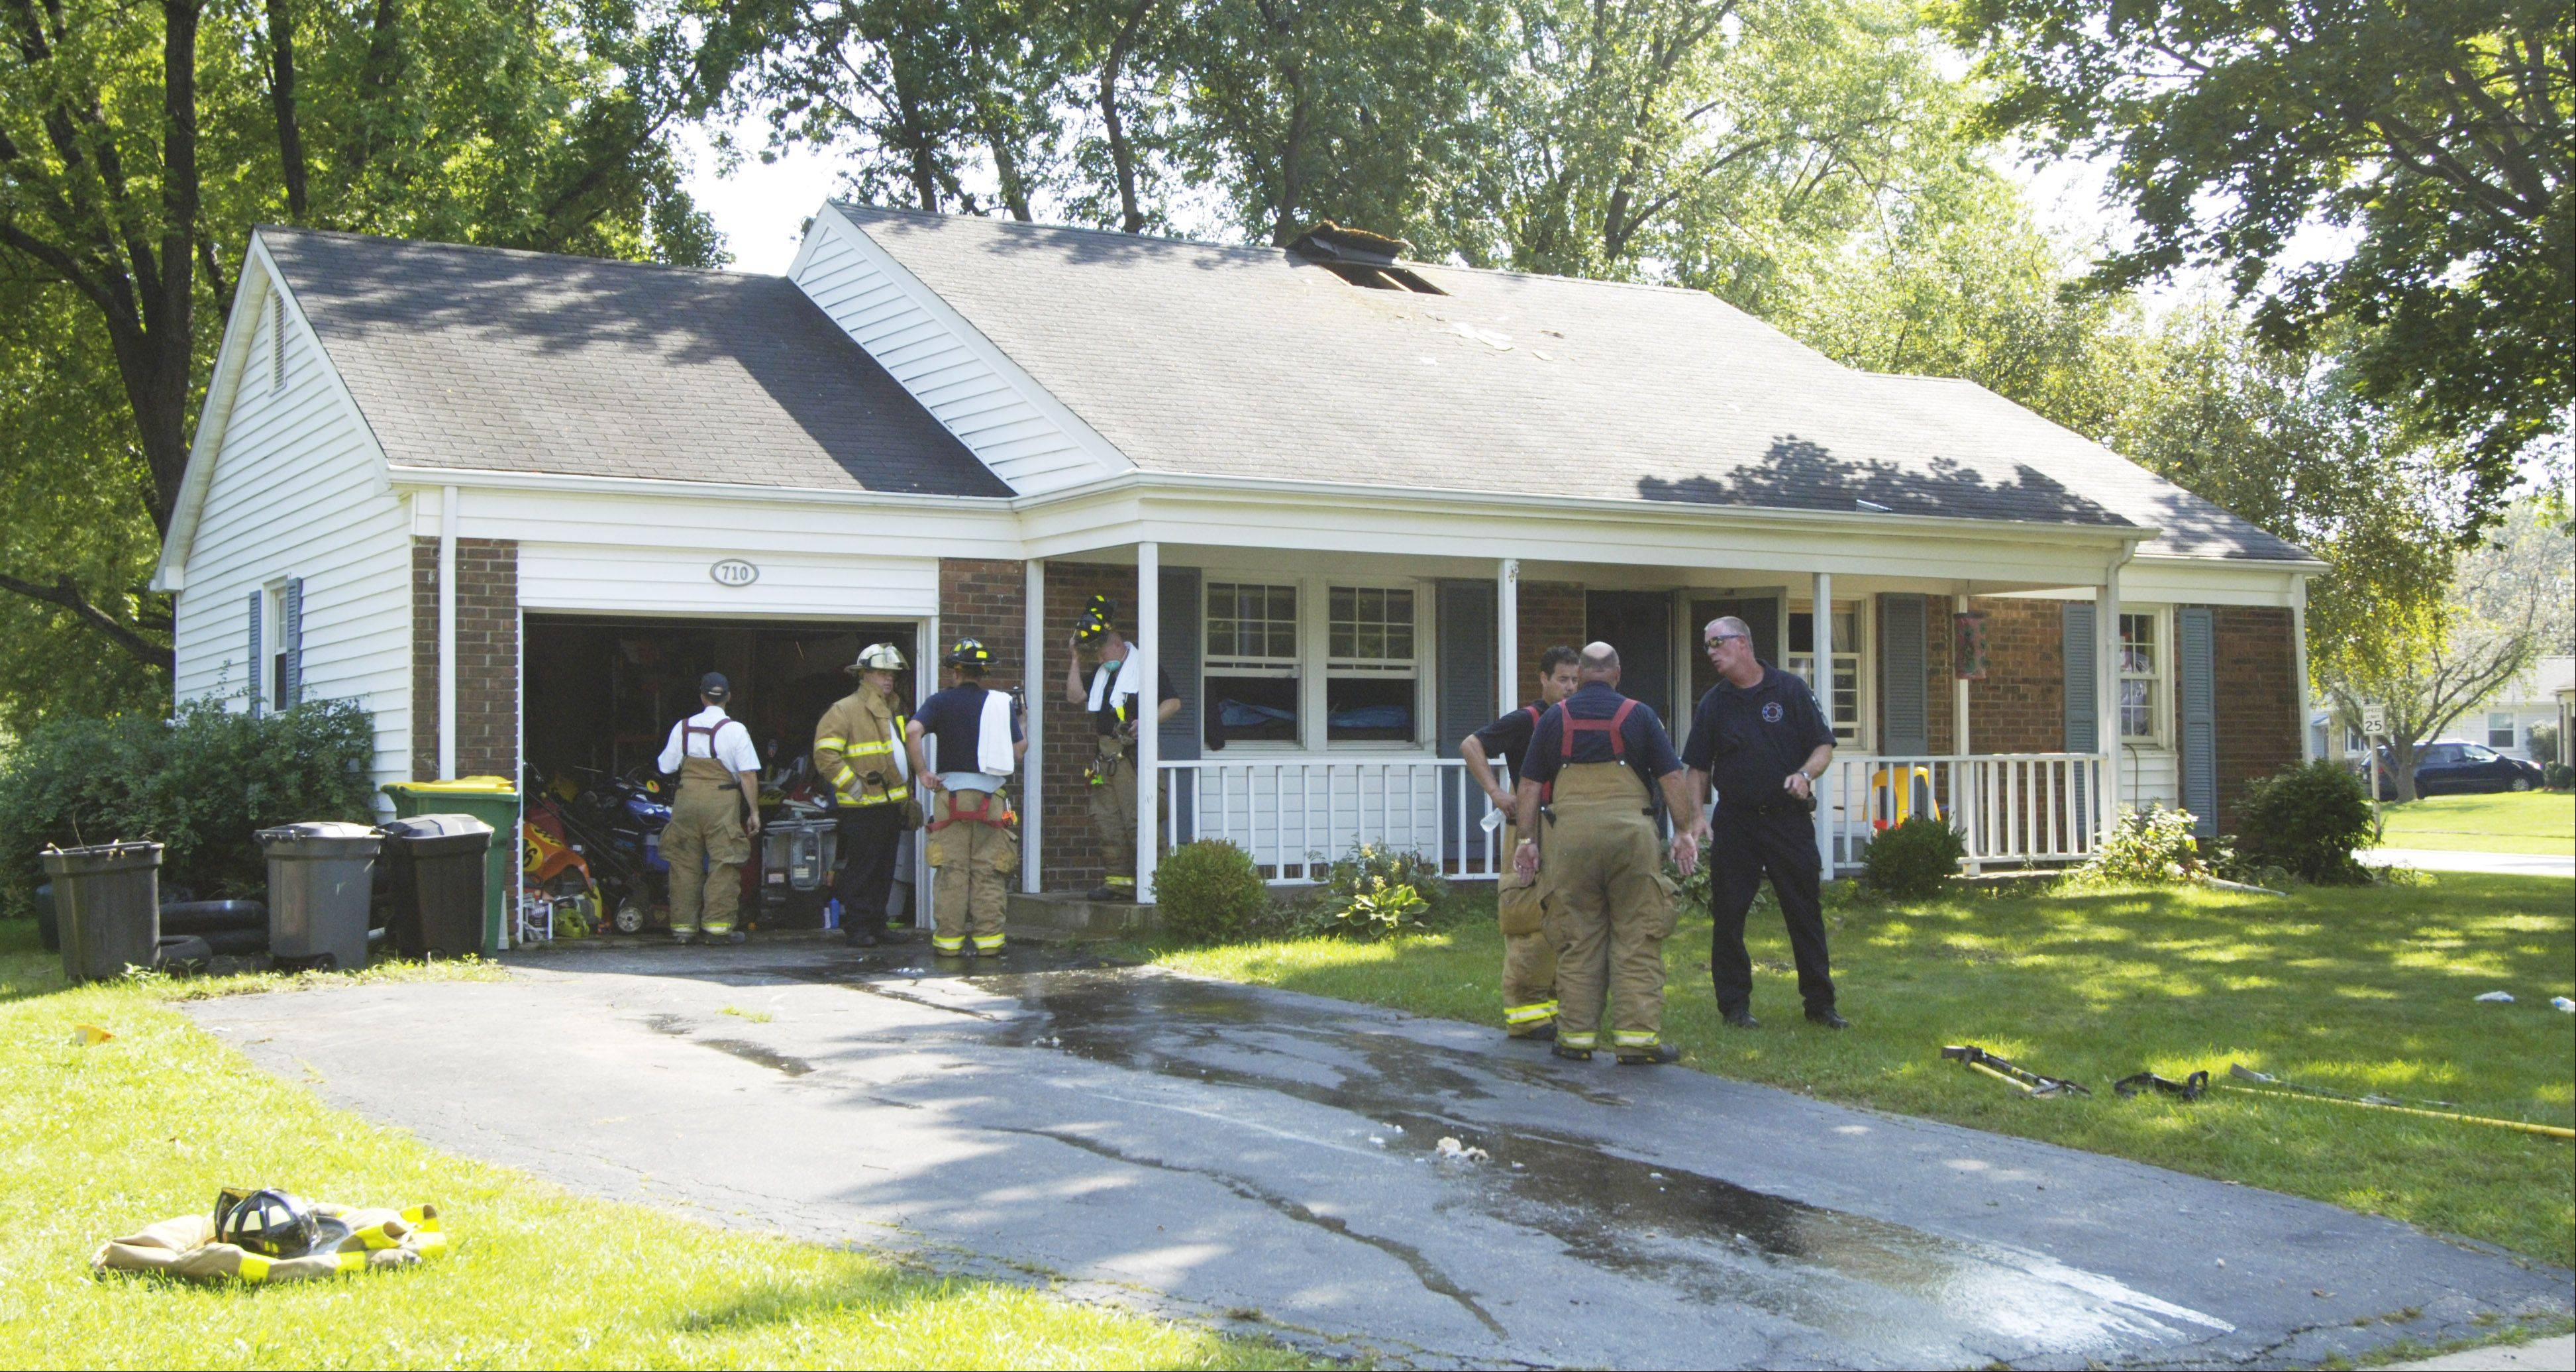 The Buffalo Grove Fire Department responded to a fire on Farrington Drive Wednesday afternoon. One dog died due to smoke inhalation.